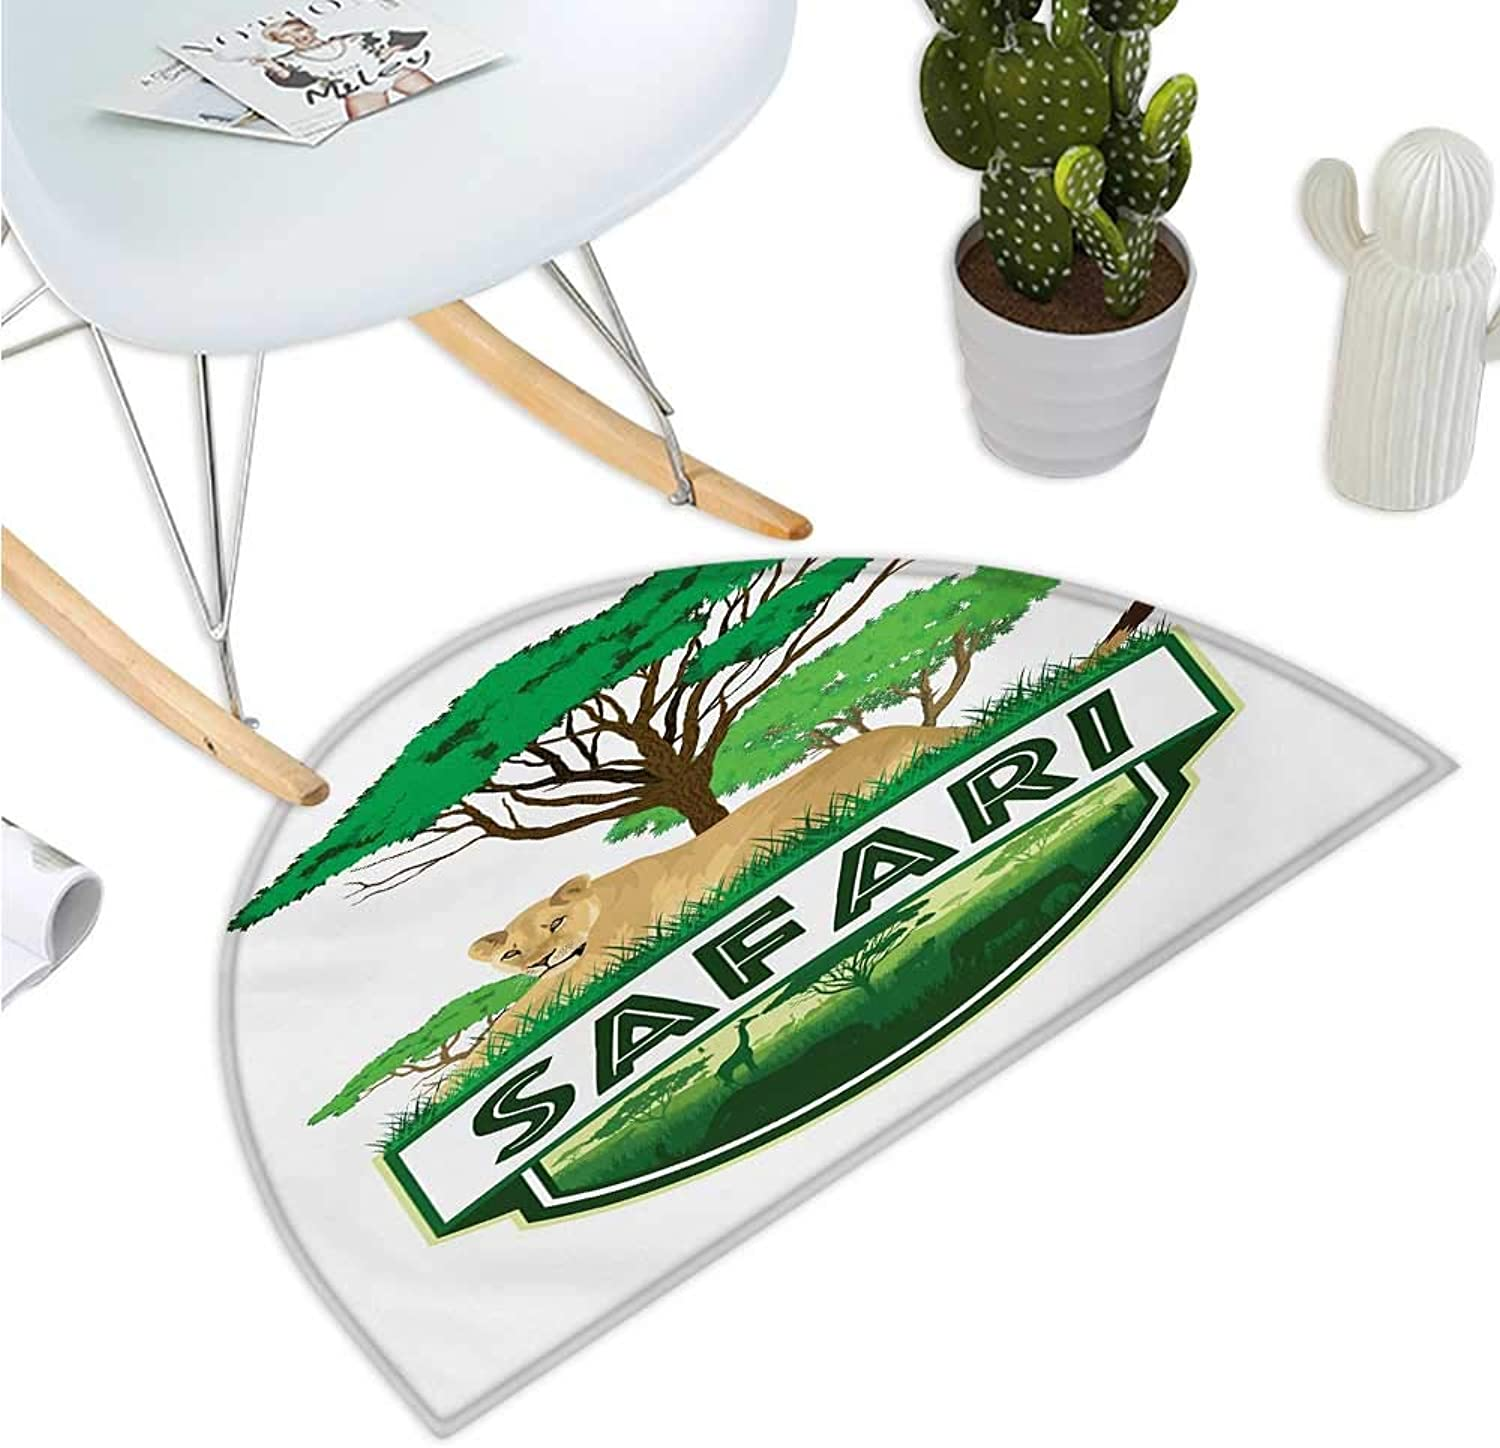 Safari Semicircular Cushion African Savannah with Lion and Green Trees Wilderness Exotic Nature Entry Door Mat H 43.3  xD 64.9  Sand Brown Hunter Green